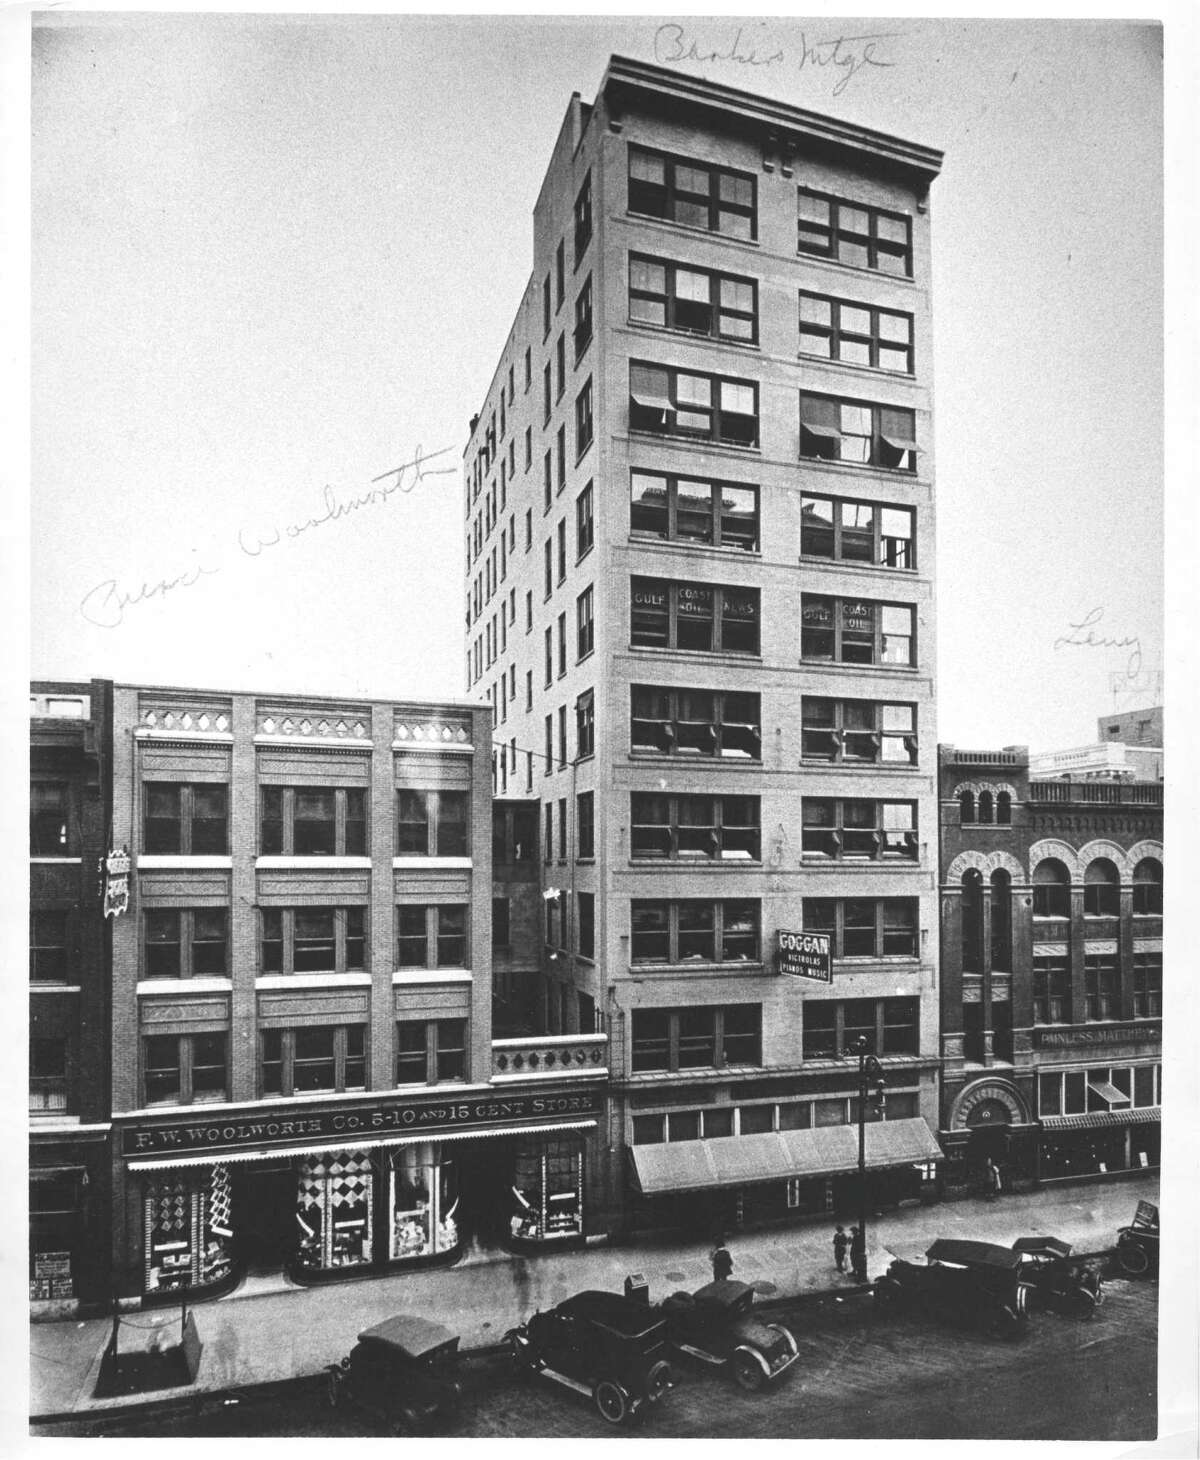 Bankers Mortgage Building, prior to 1922. The original Houston home for Texaco.